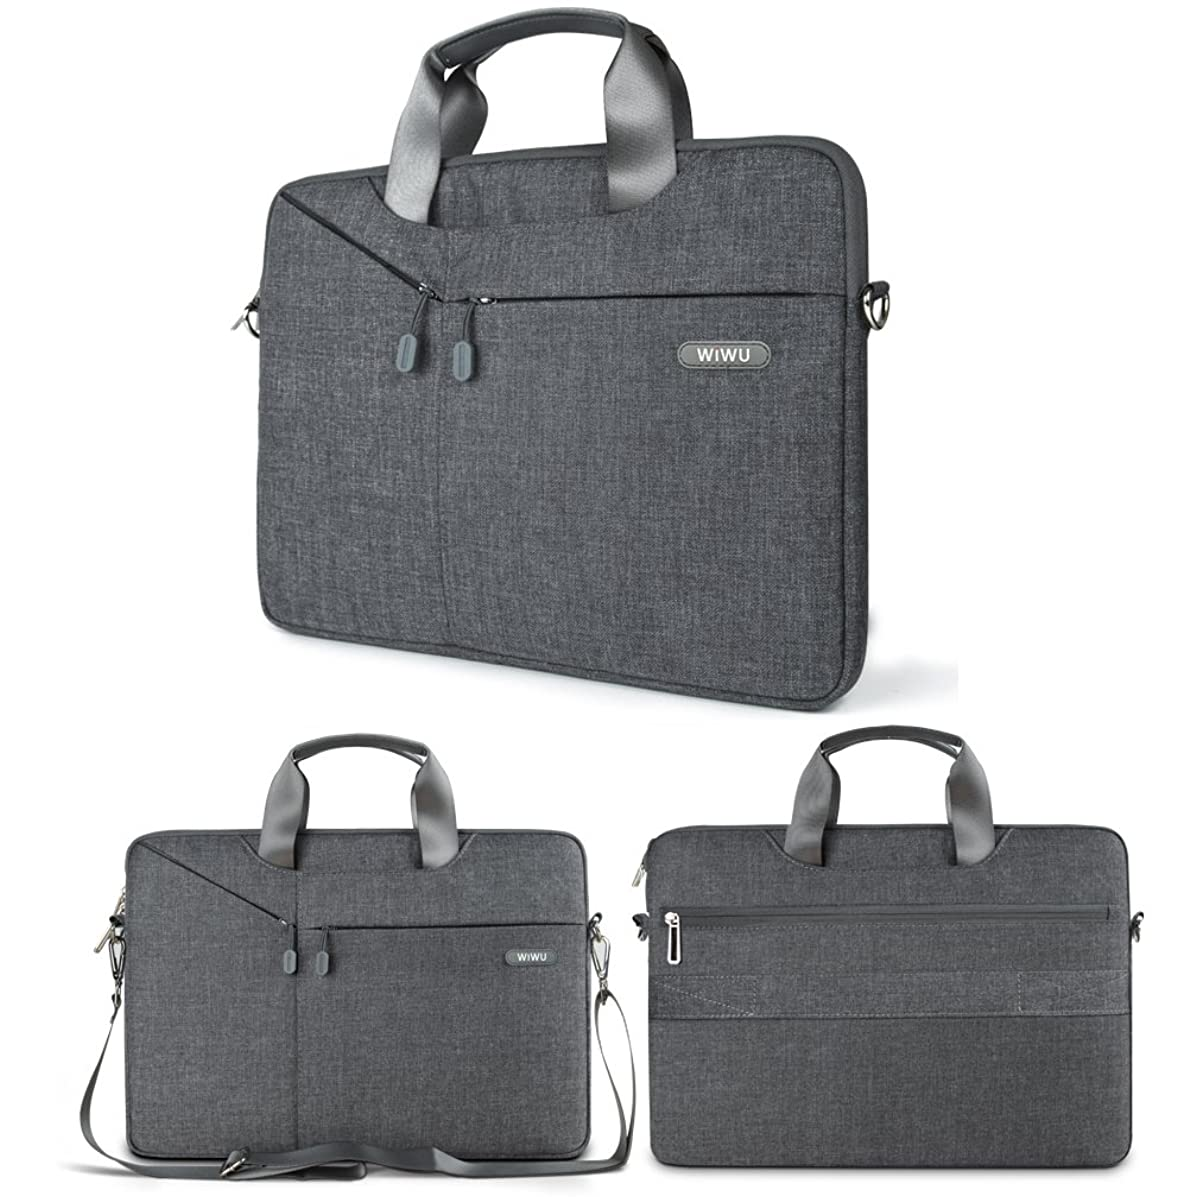 WIWU Multifunctional Business Briefcase Luxury Portable Laptop Sleeve Case Carrying Messenger Bag for 13